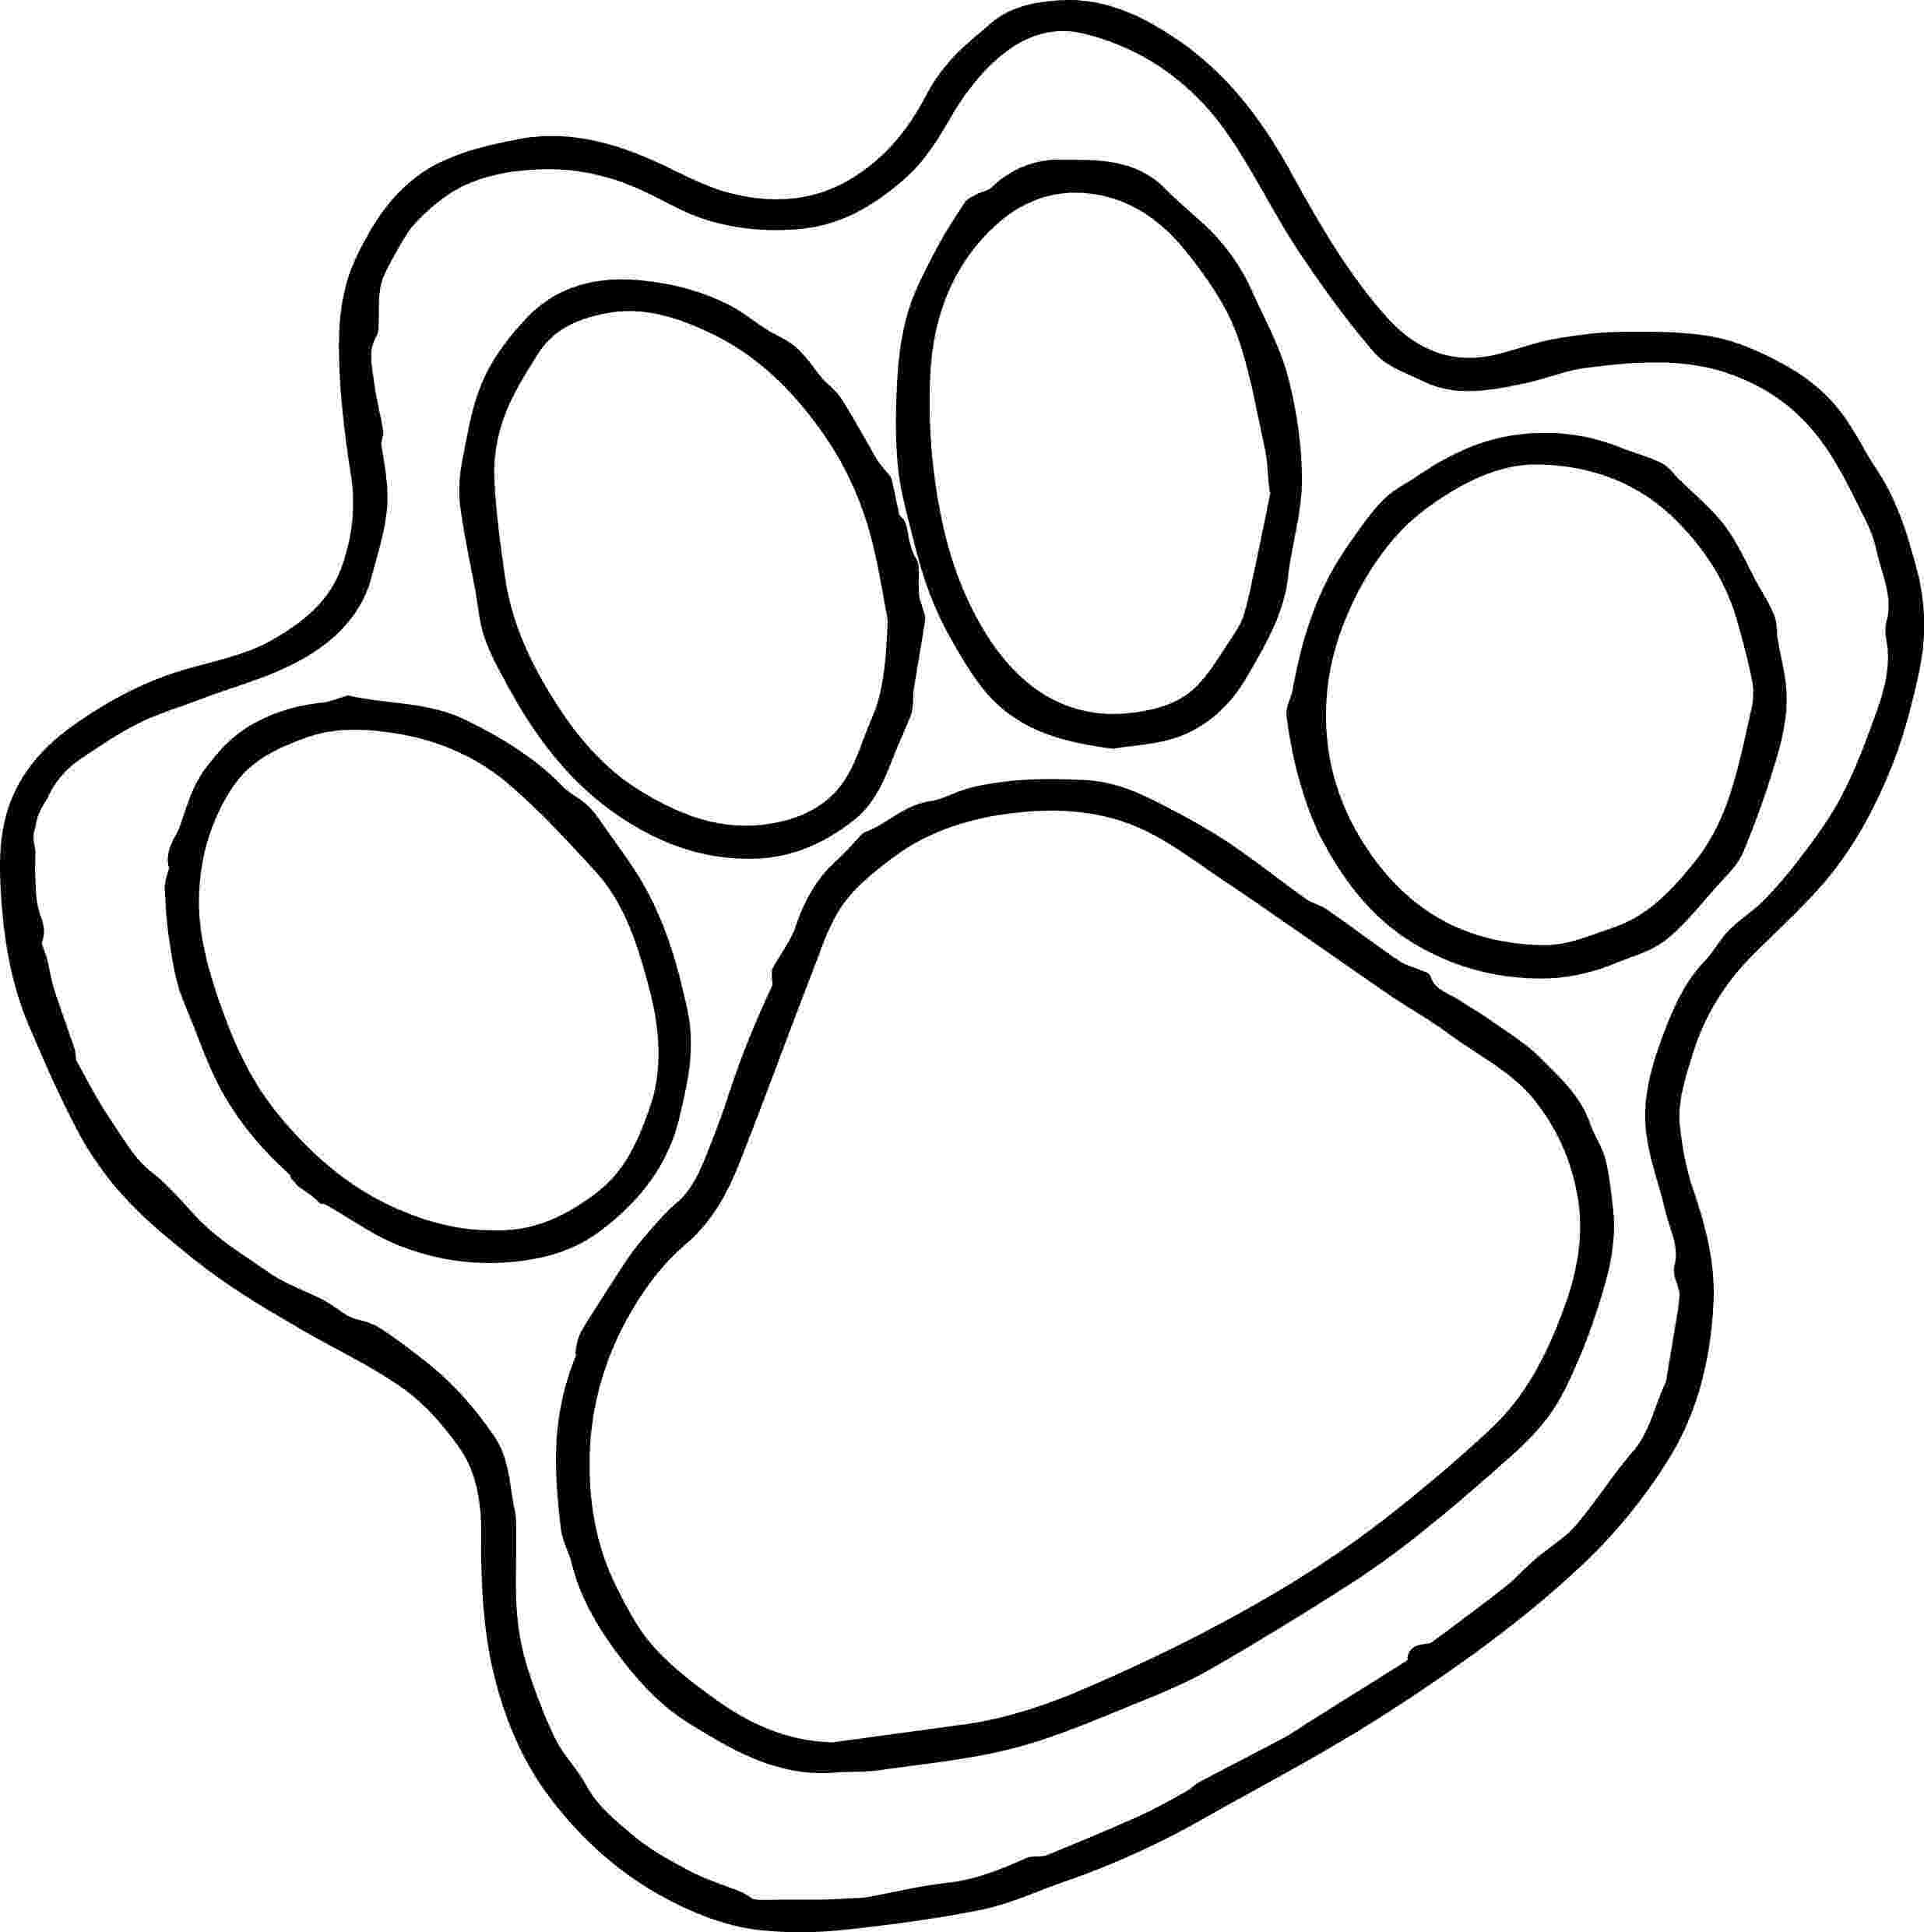 dog paw coloring page set of 8 dog paw prints decals 15quot choose color ebay dog page coloring paw